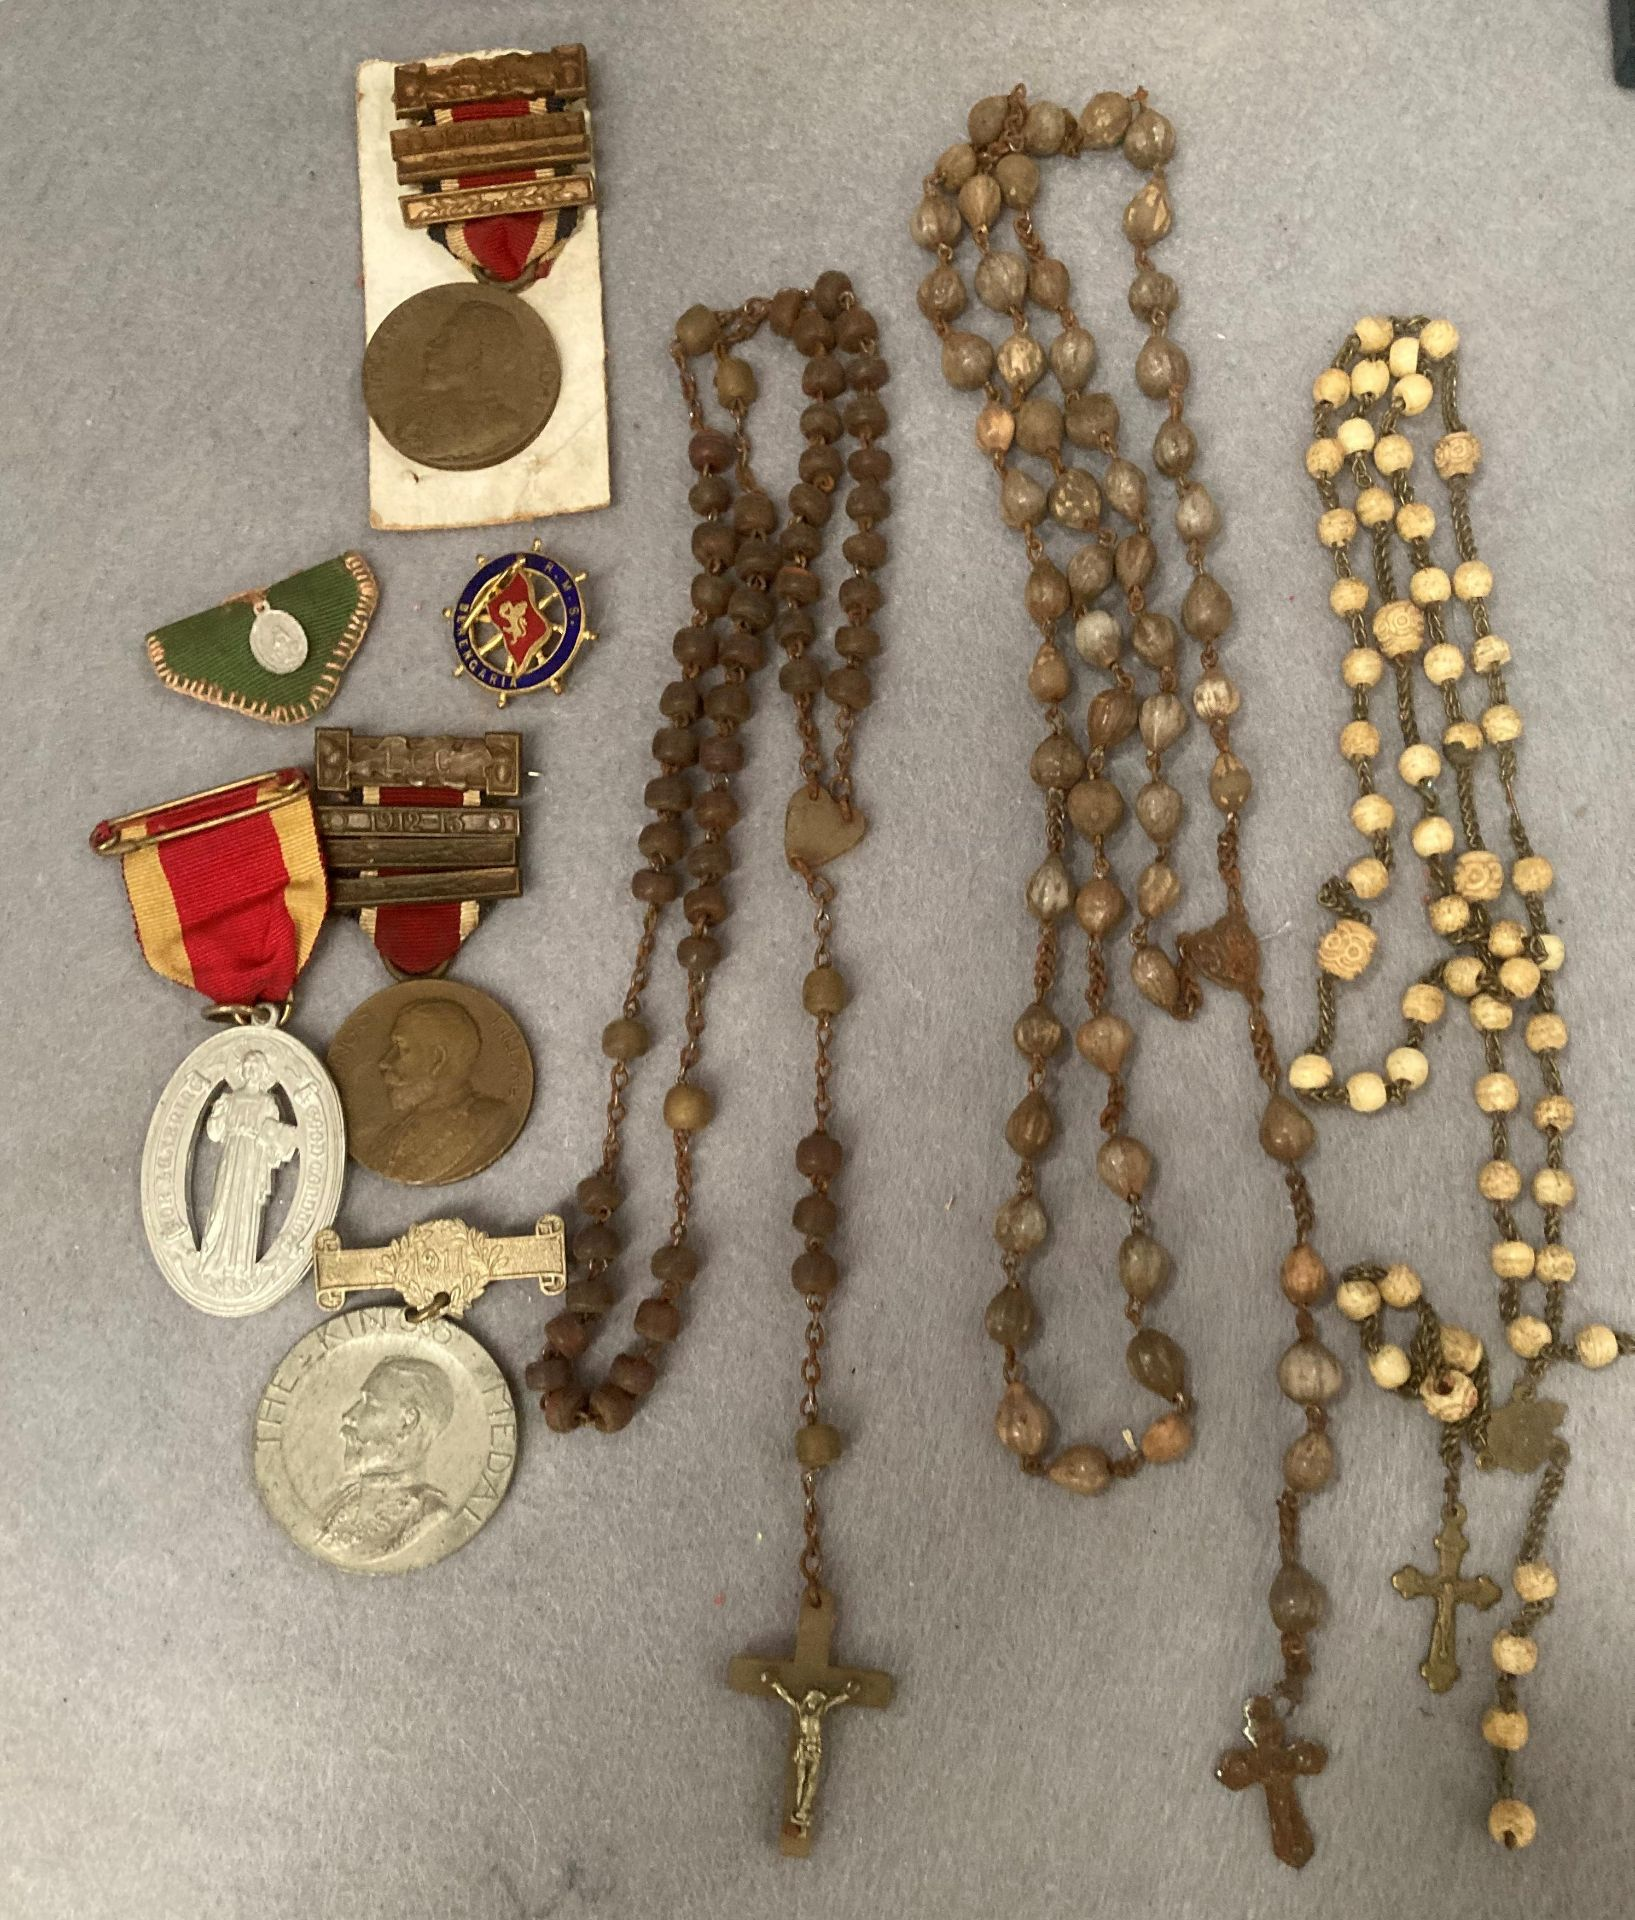 Contents to small tray - religious and other medals - two the Kings medal, silver locket, beads, R. - Image 2 of 4